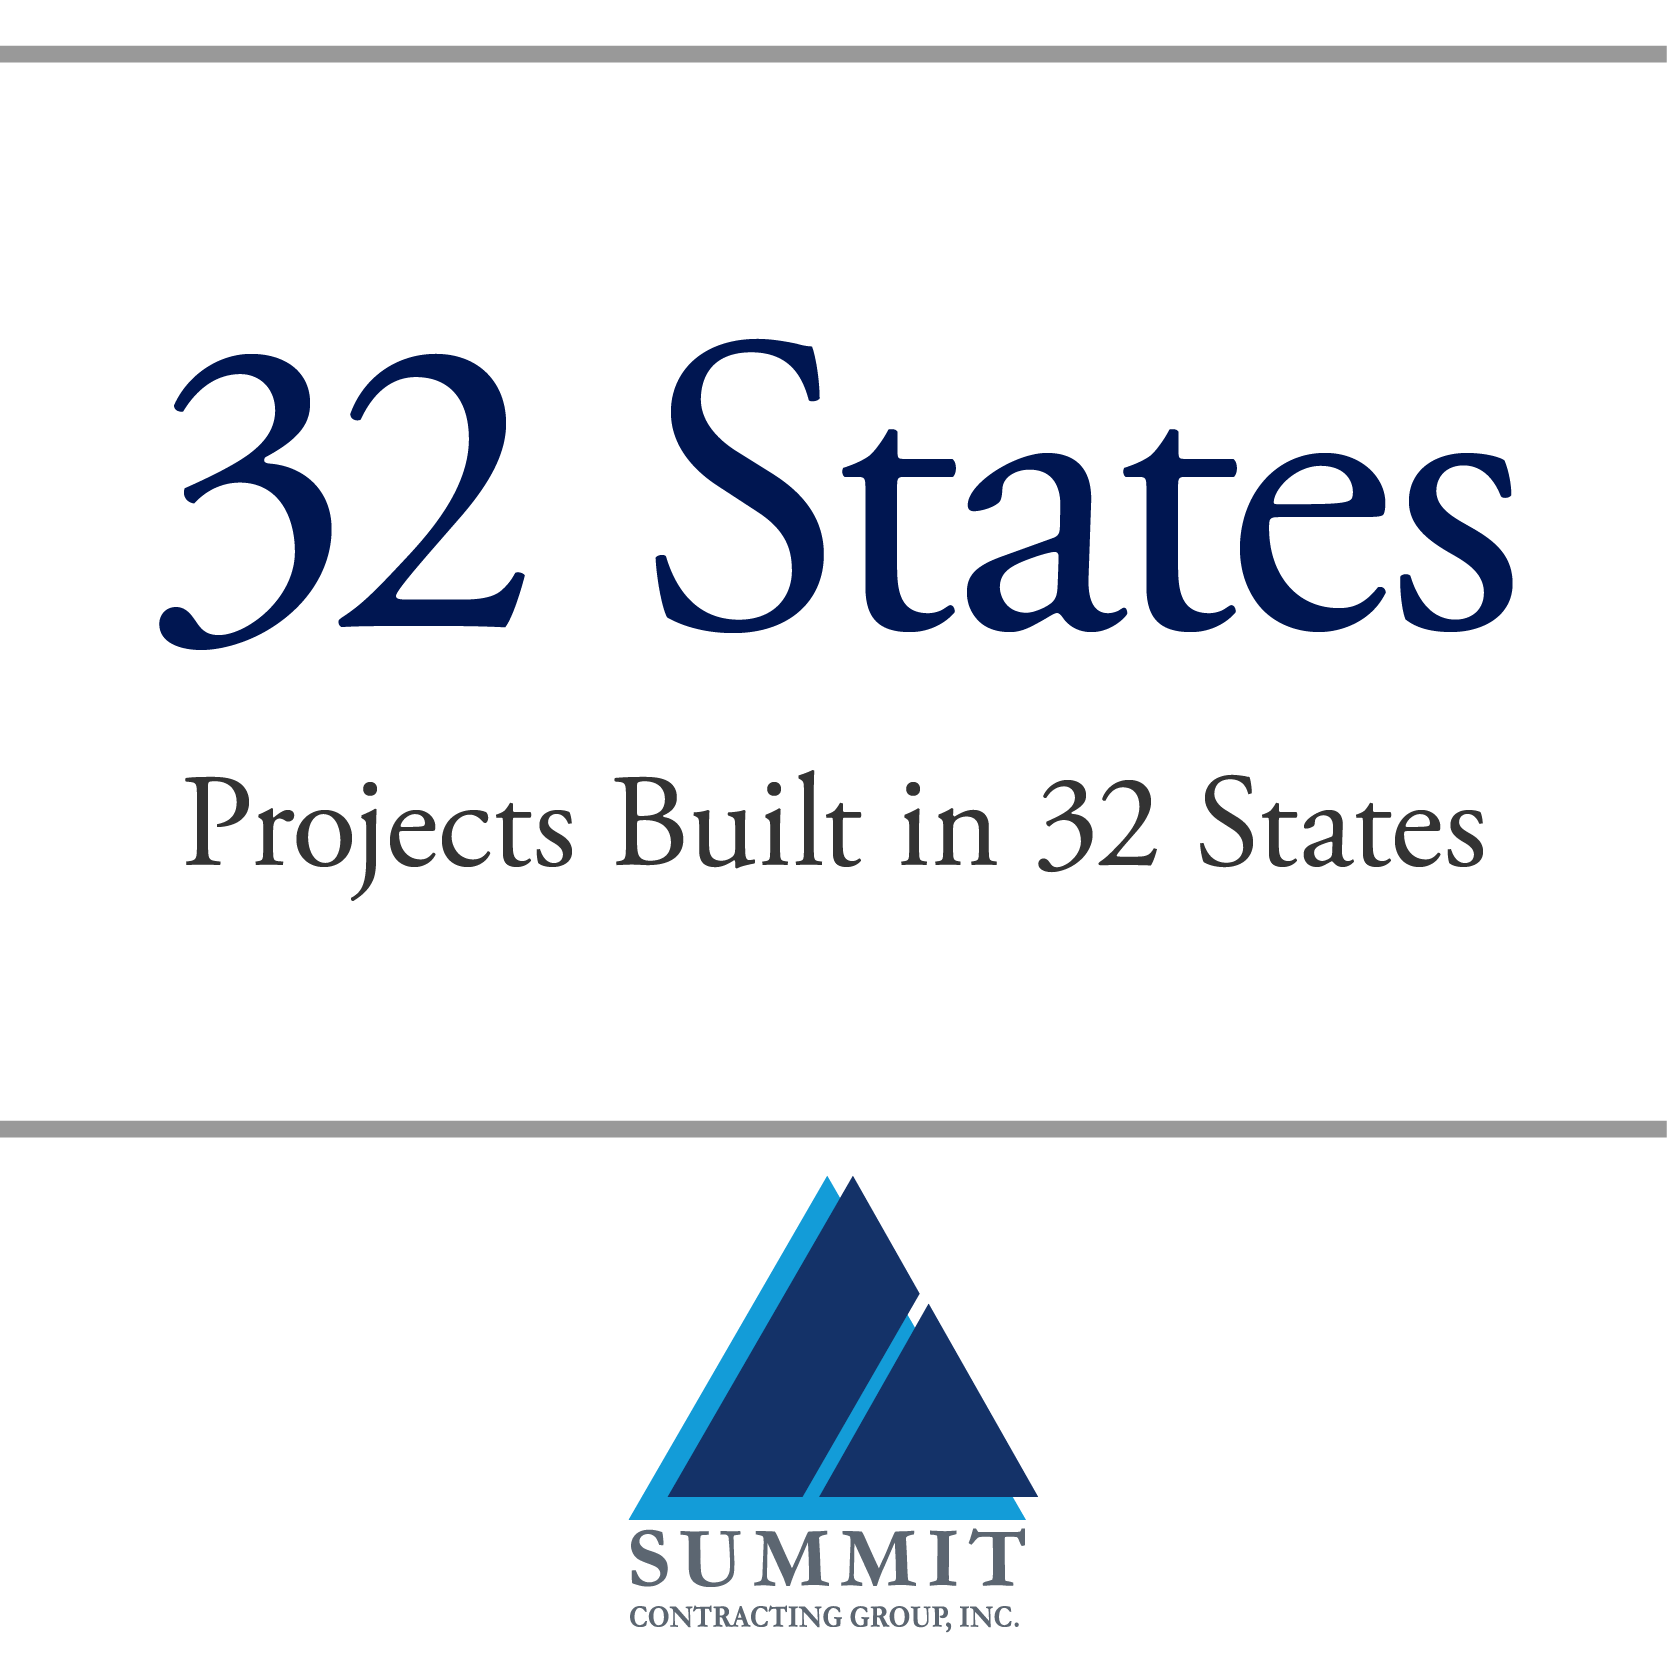 Projects Built in 32 States